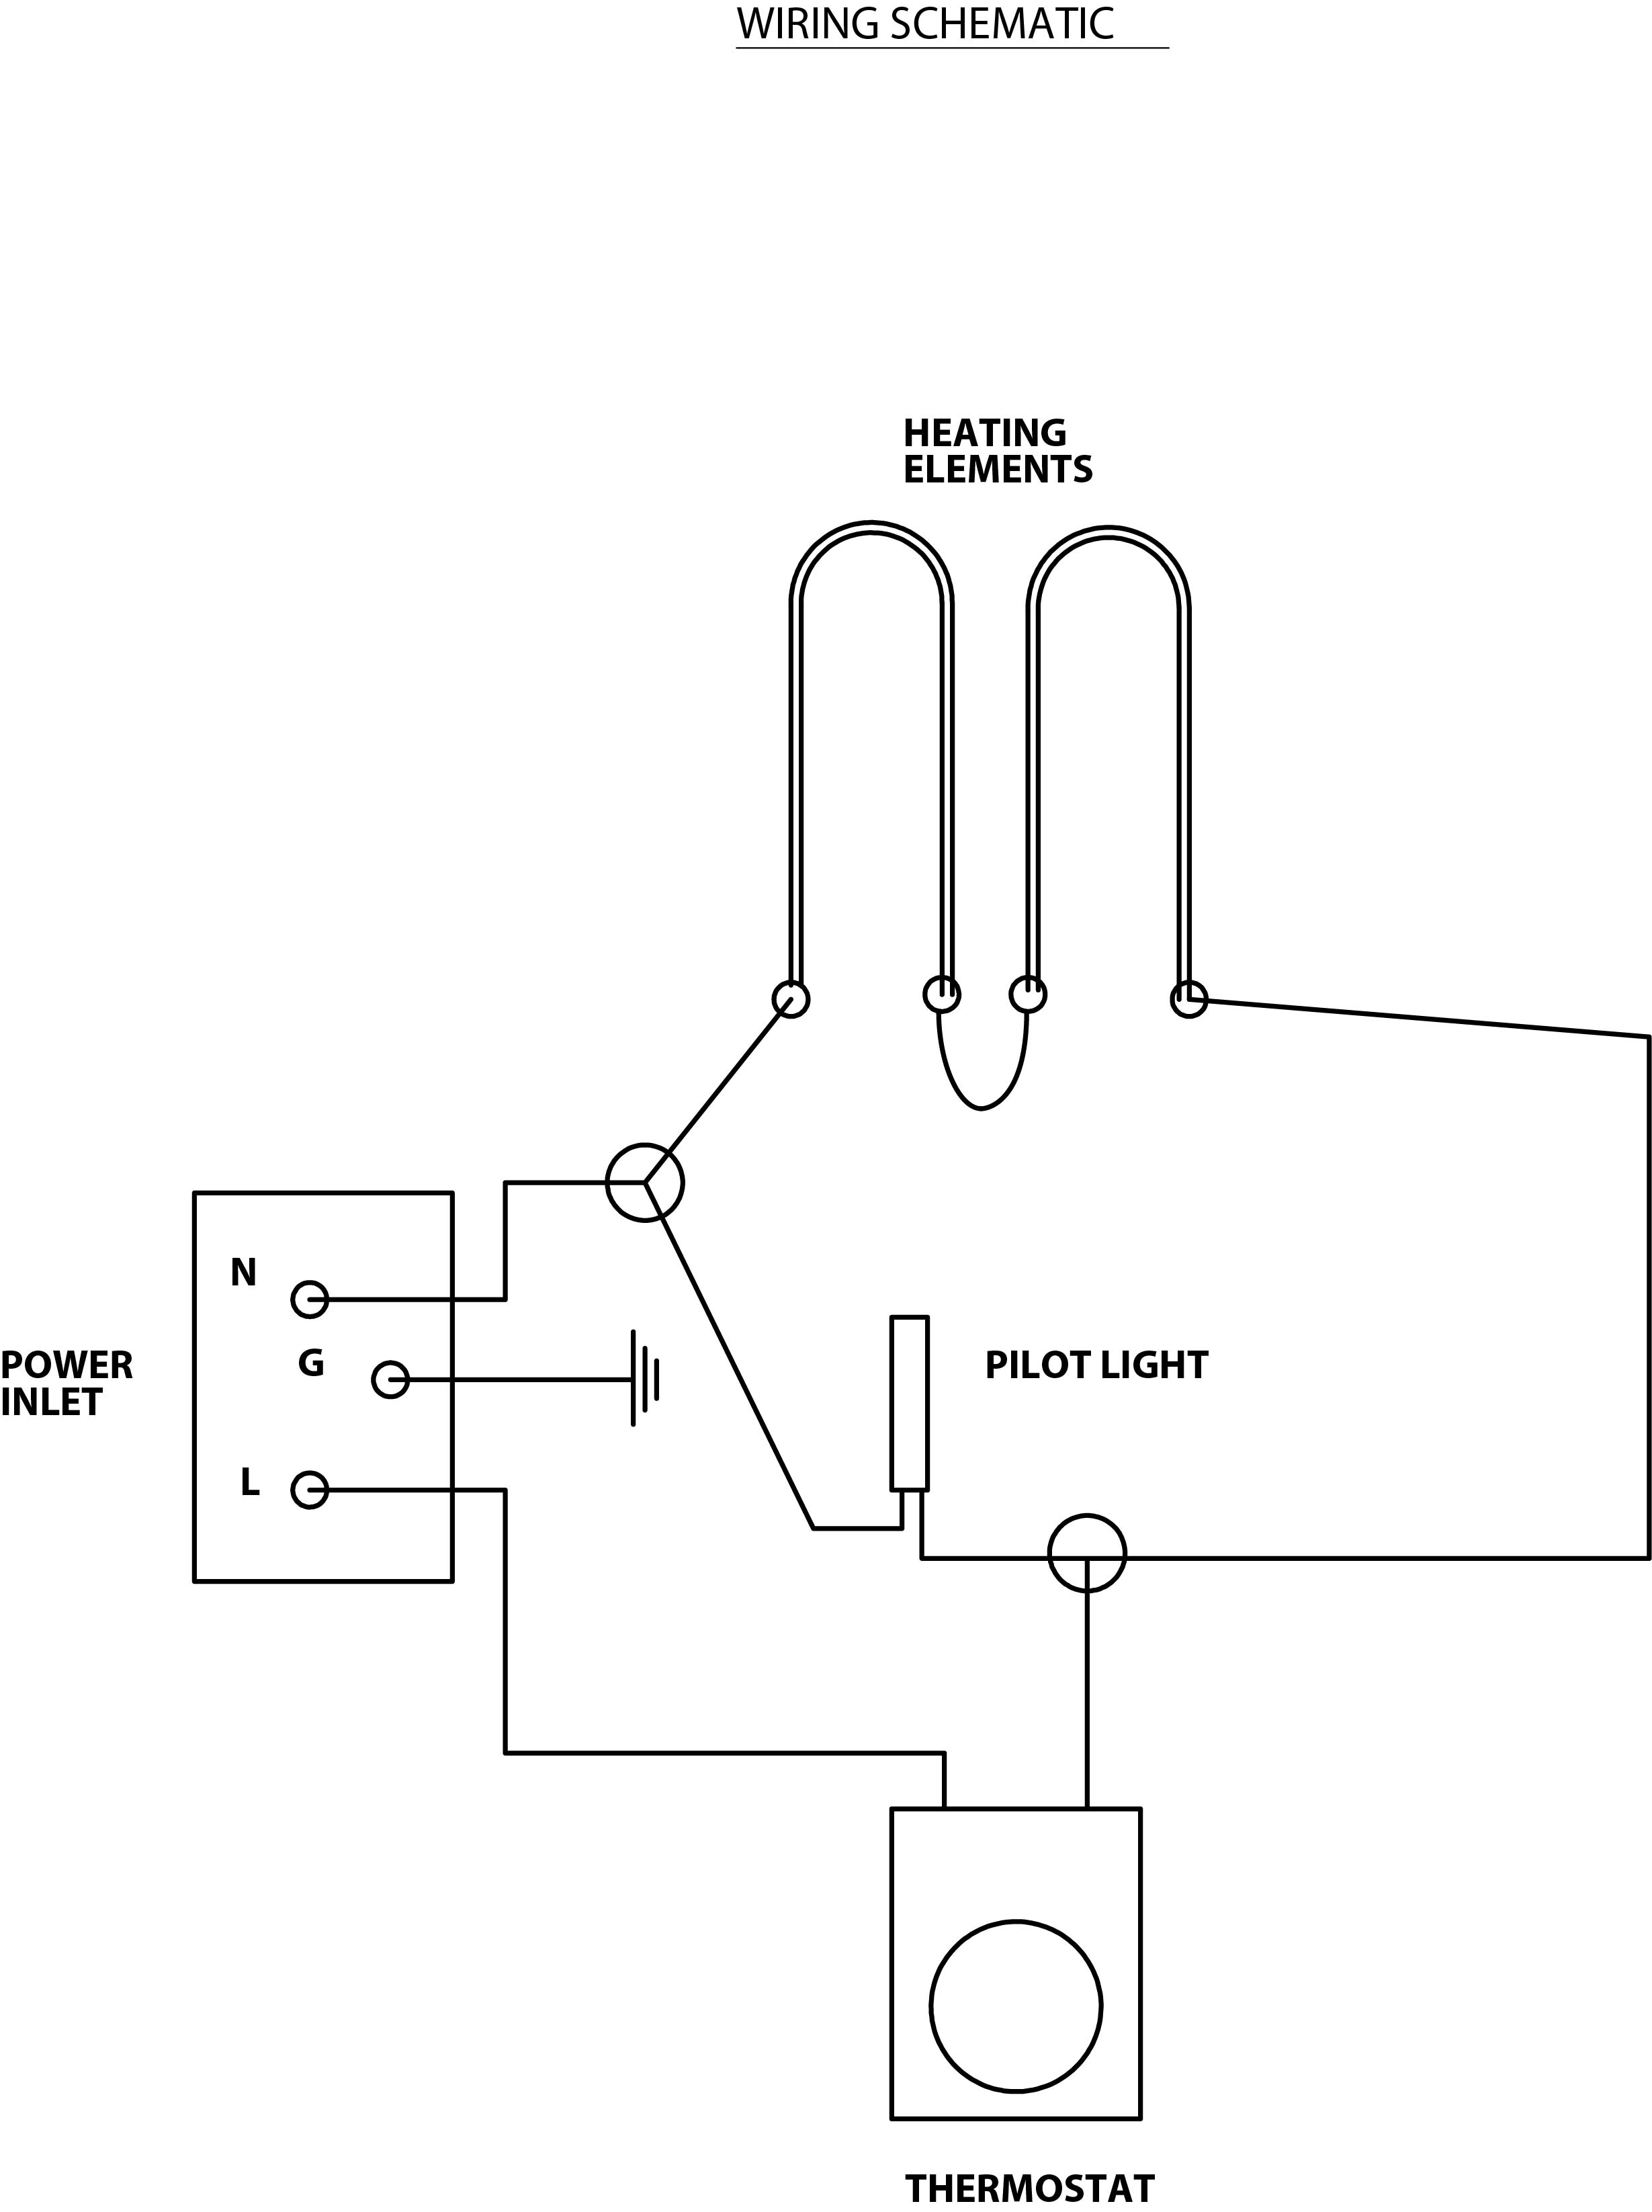 Heater Element Wiring Diagram Diagrams 230 Volt 3 Phase Thermostat 26 Images Heating Immersion